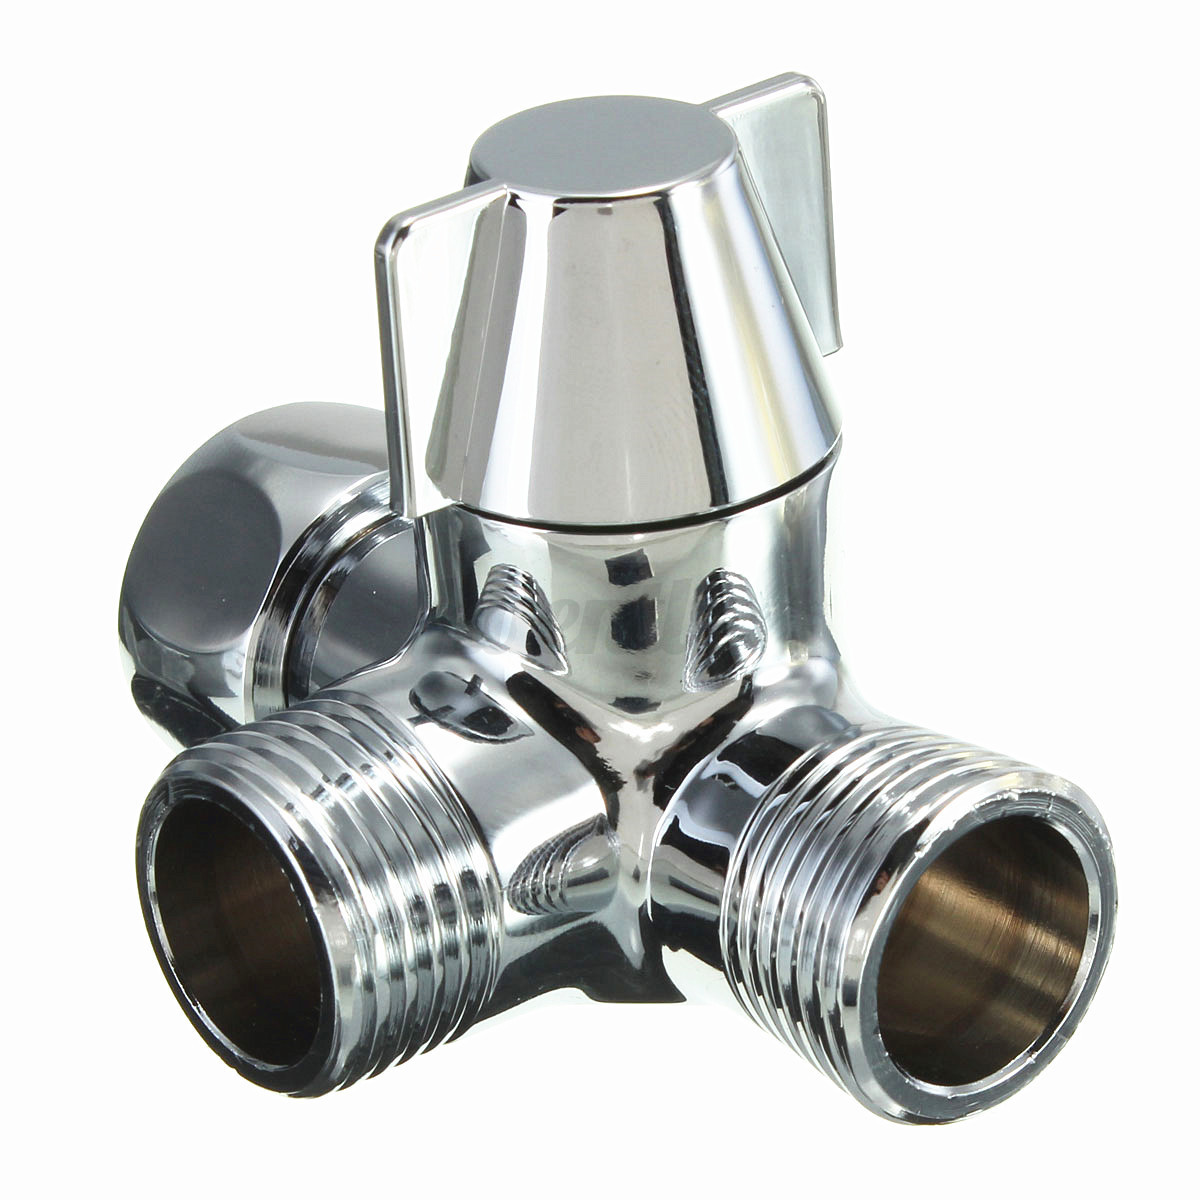 g1 2 brass 3 way shower head diverter valve faucet convert your hot and cold taps into an instant shower by